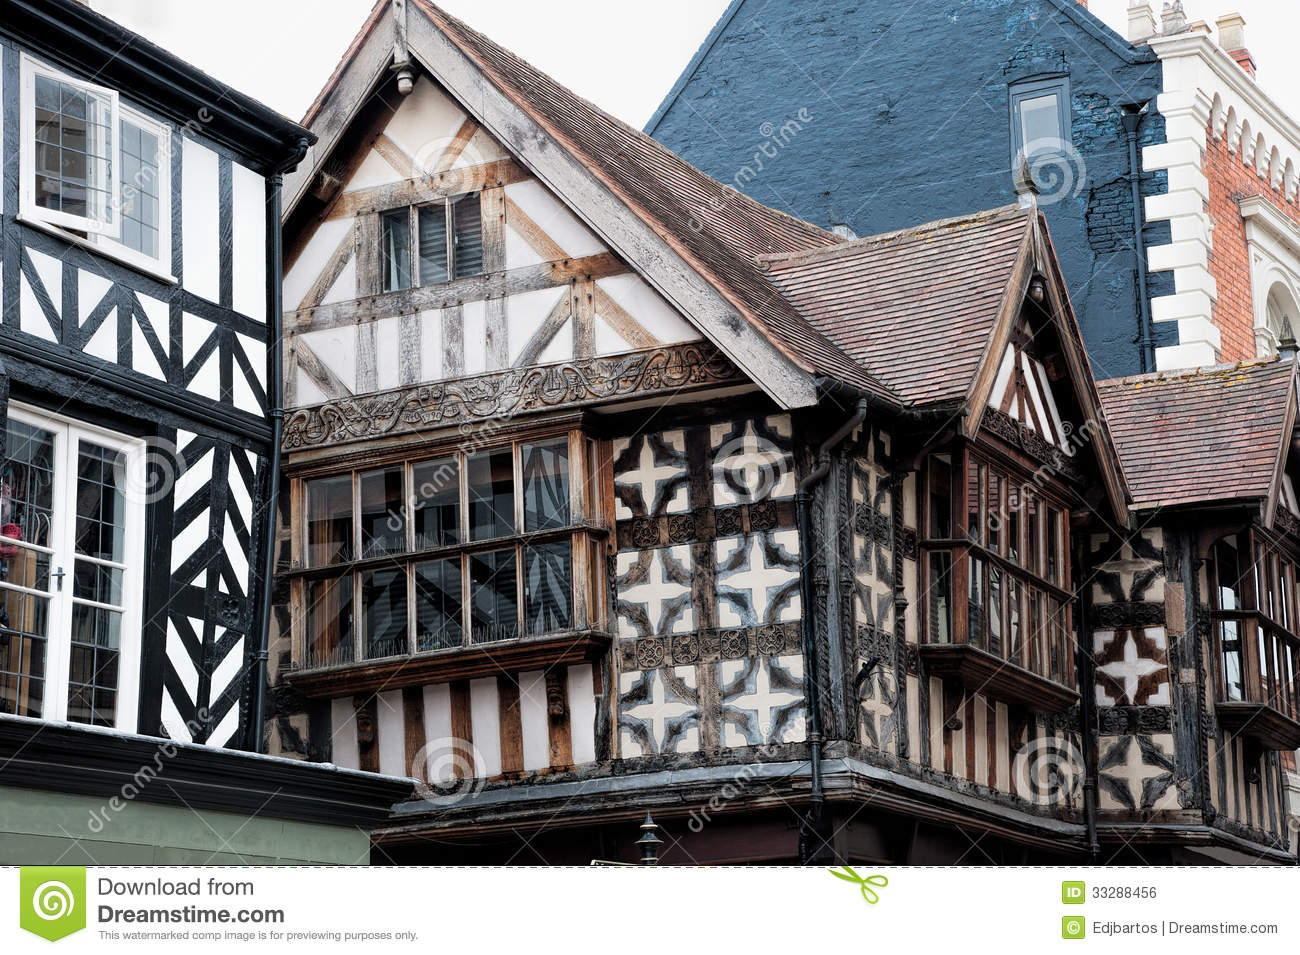 Tudor Facade tudor buildings royalty free stock image - image: 33288456